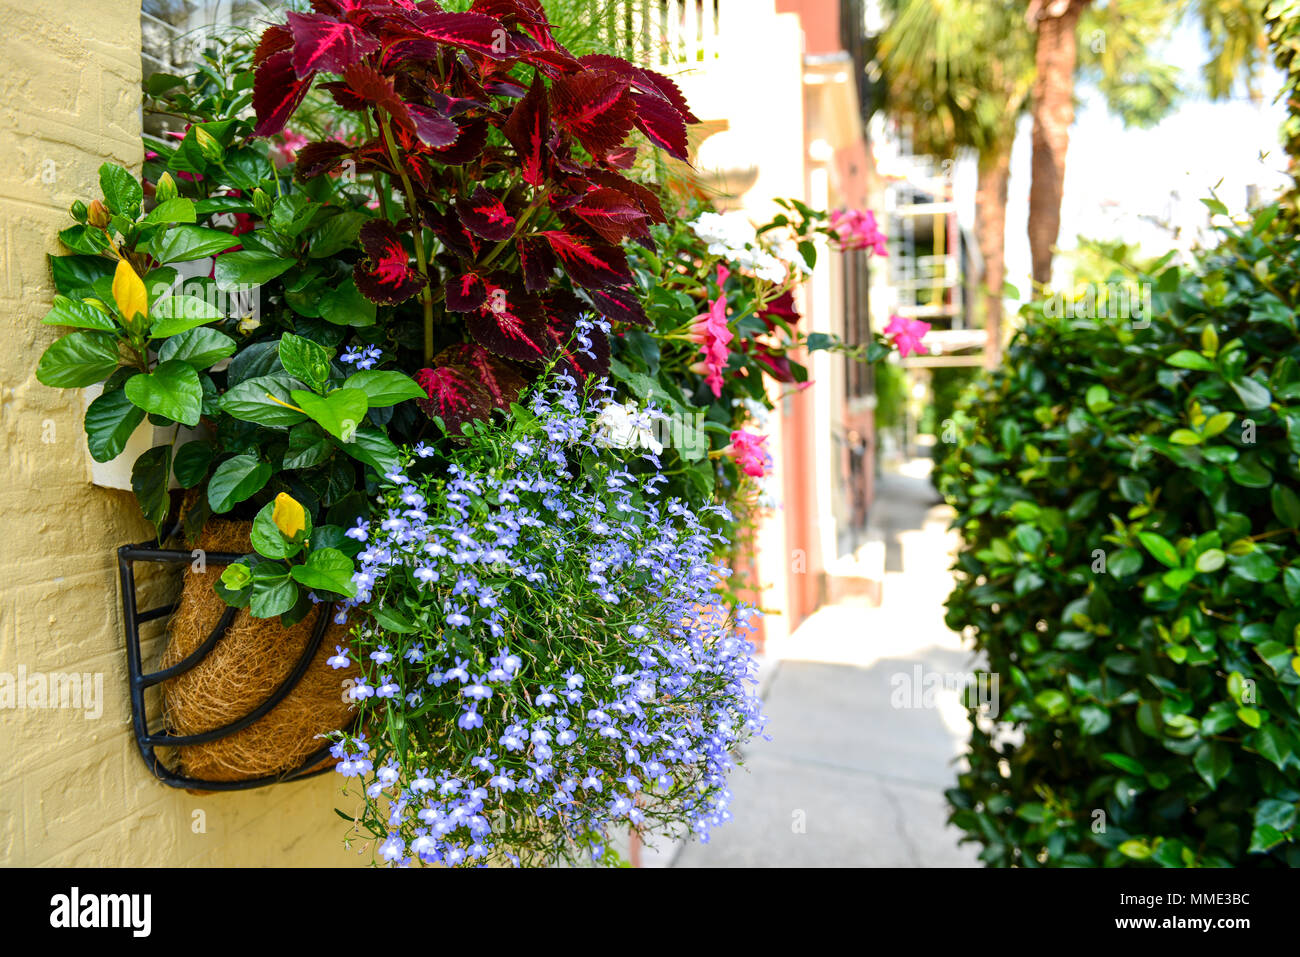 Flowering Street - Colorful Window Box flowers on a historic Charleston street in Downtown Charleston, South Carolina, USA. - Stock Image